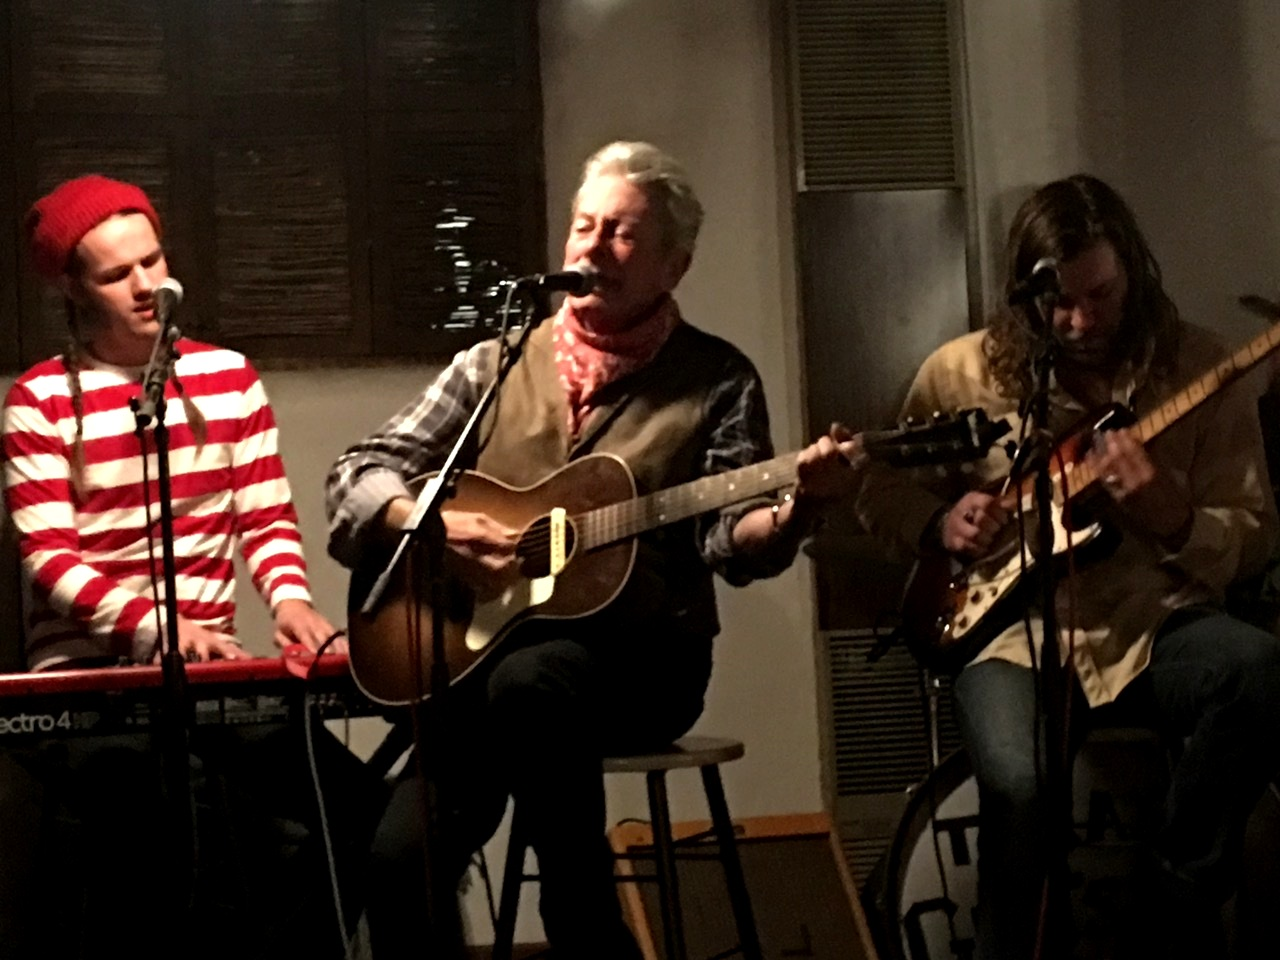 Joe Ely, The Texas Gentlemen. El Rey Hotel, Santa Fe NM • Dec. 30, 2018